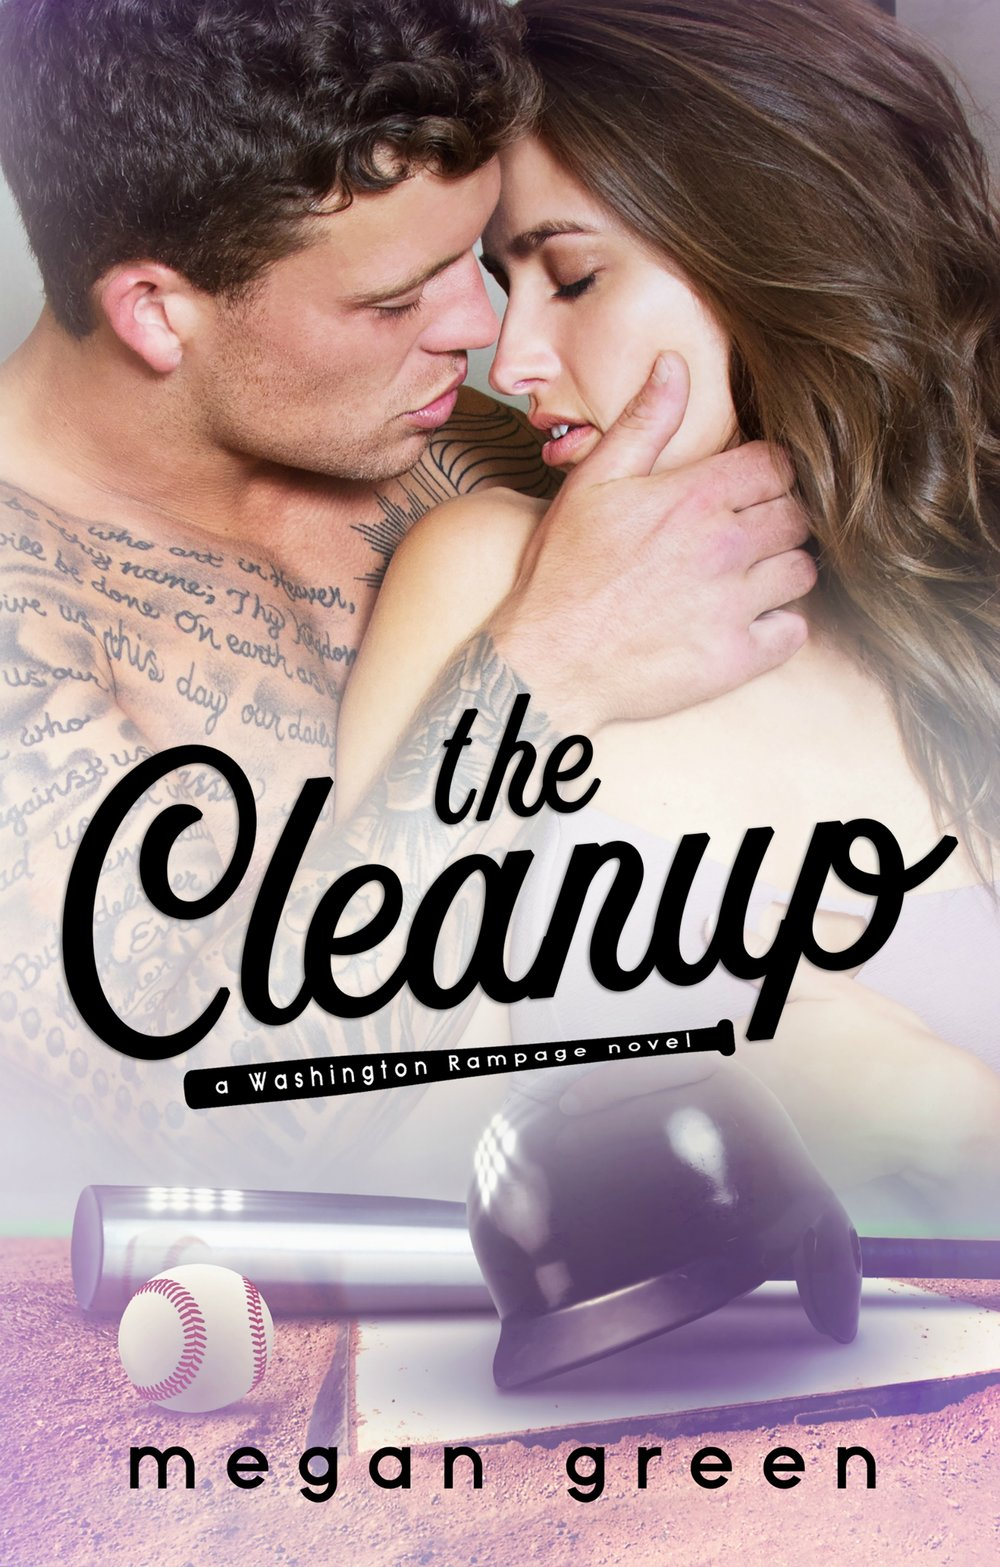 The Cleanup Ebook Cover.jpg